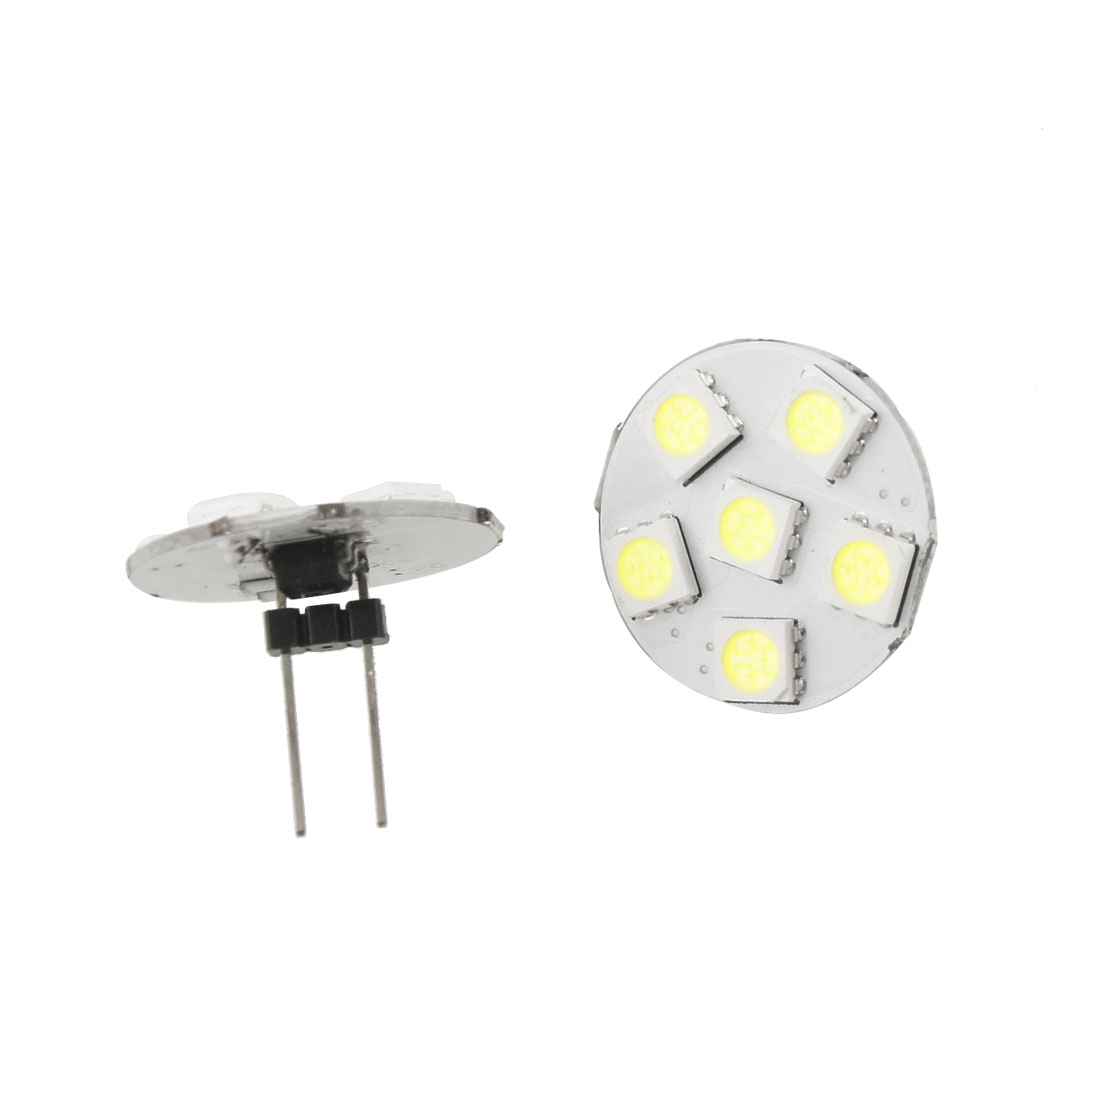 2 Pcs Car Auto White 5050 SMD 6 LEDs Vertical G4 Back Pin Light Bulb